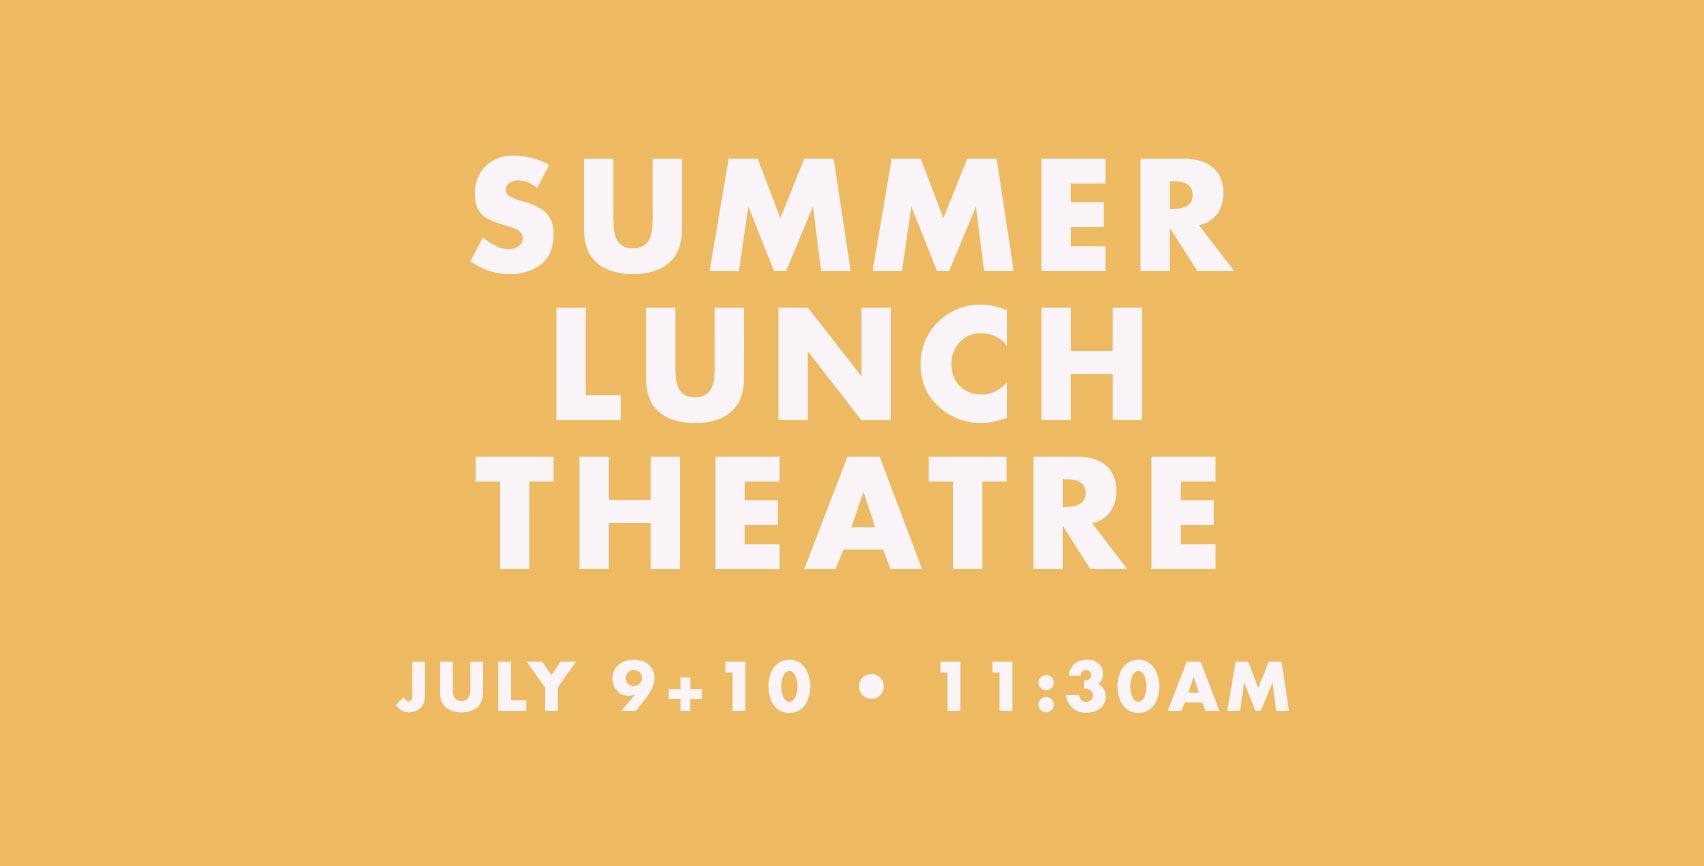 Summer Lunch Theatre